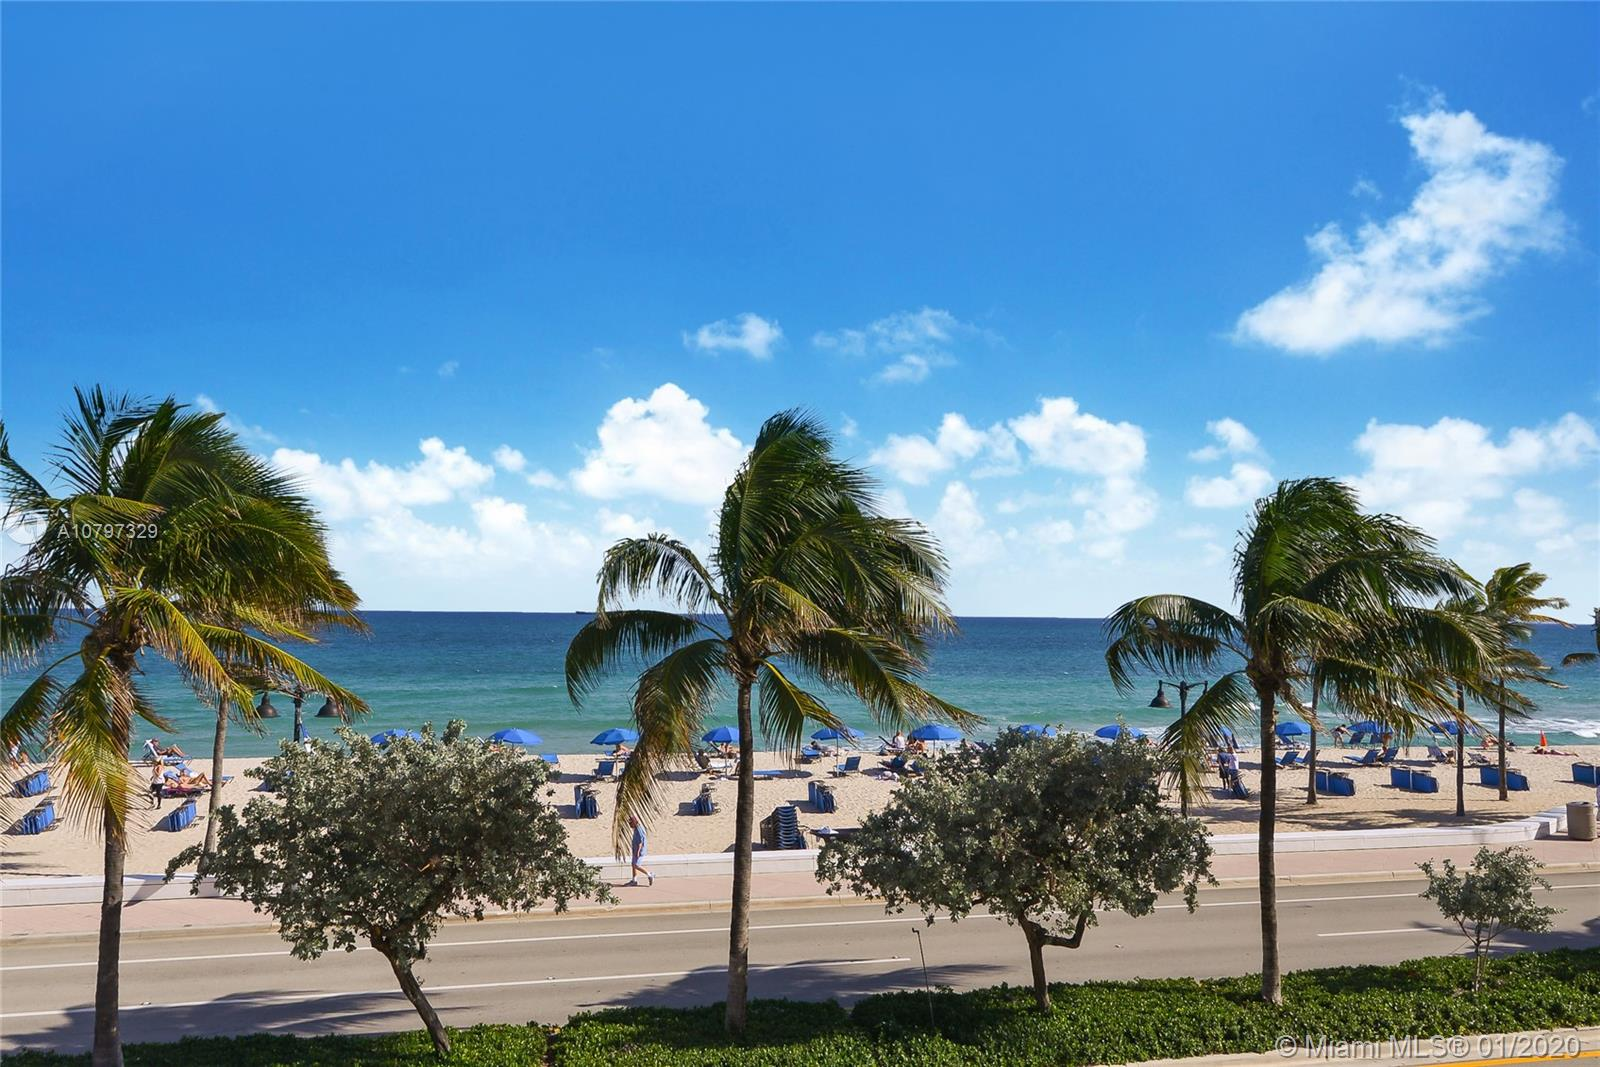 The lifestyle you have been dreaming of is now possible. This luxurious condo is located front row on Fort Lauderdale Beach and boasts 3 bedrooms and 3.5 bathrooms, floor to ceiling walls of glass to take in the pristine ocean views from every room and a circular staircase leading to the private master retreat and luxurious bath on the second floor. The 3 balconies invite you to watch the sunrise every morning, relax and become one with the spectacular surroundings. Five star amenities such as valet parking, gym, spa, pool, restaurants and shopping complete your experience and make the Presidential Suite the perfect second home. Priced at only $353 per sq/ft receive 2 years or free maintenance, use it for up to 120 days and rent it either on your own or through the hotel program.